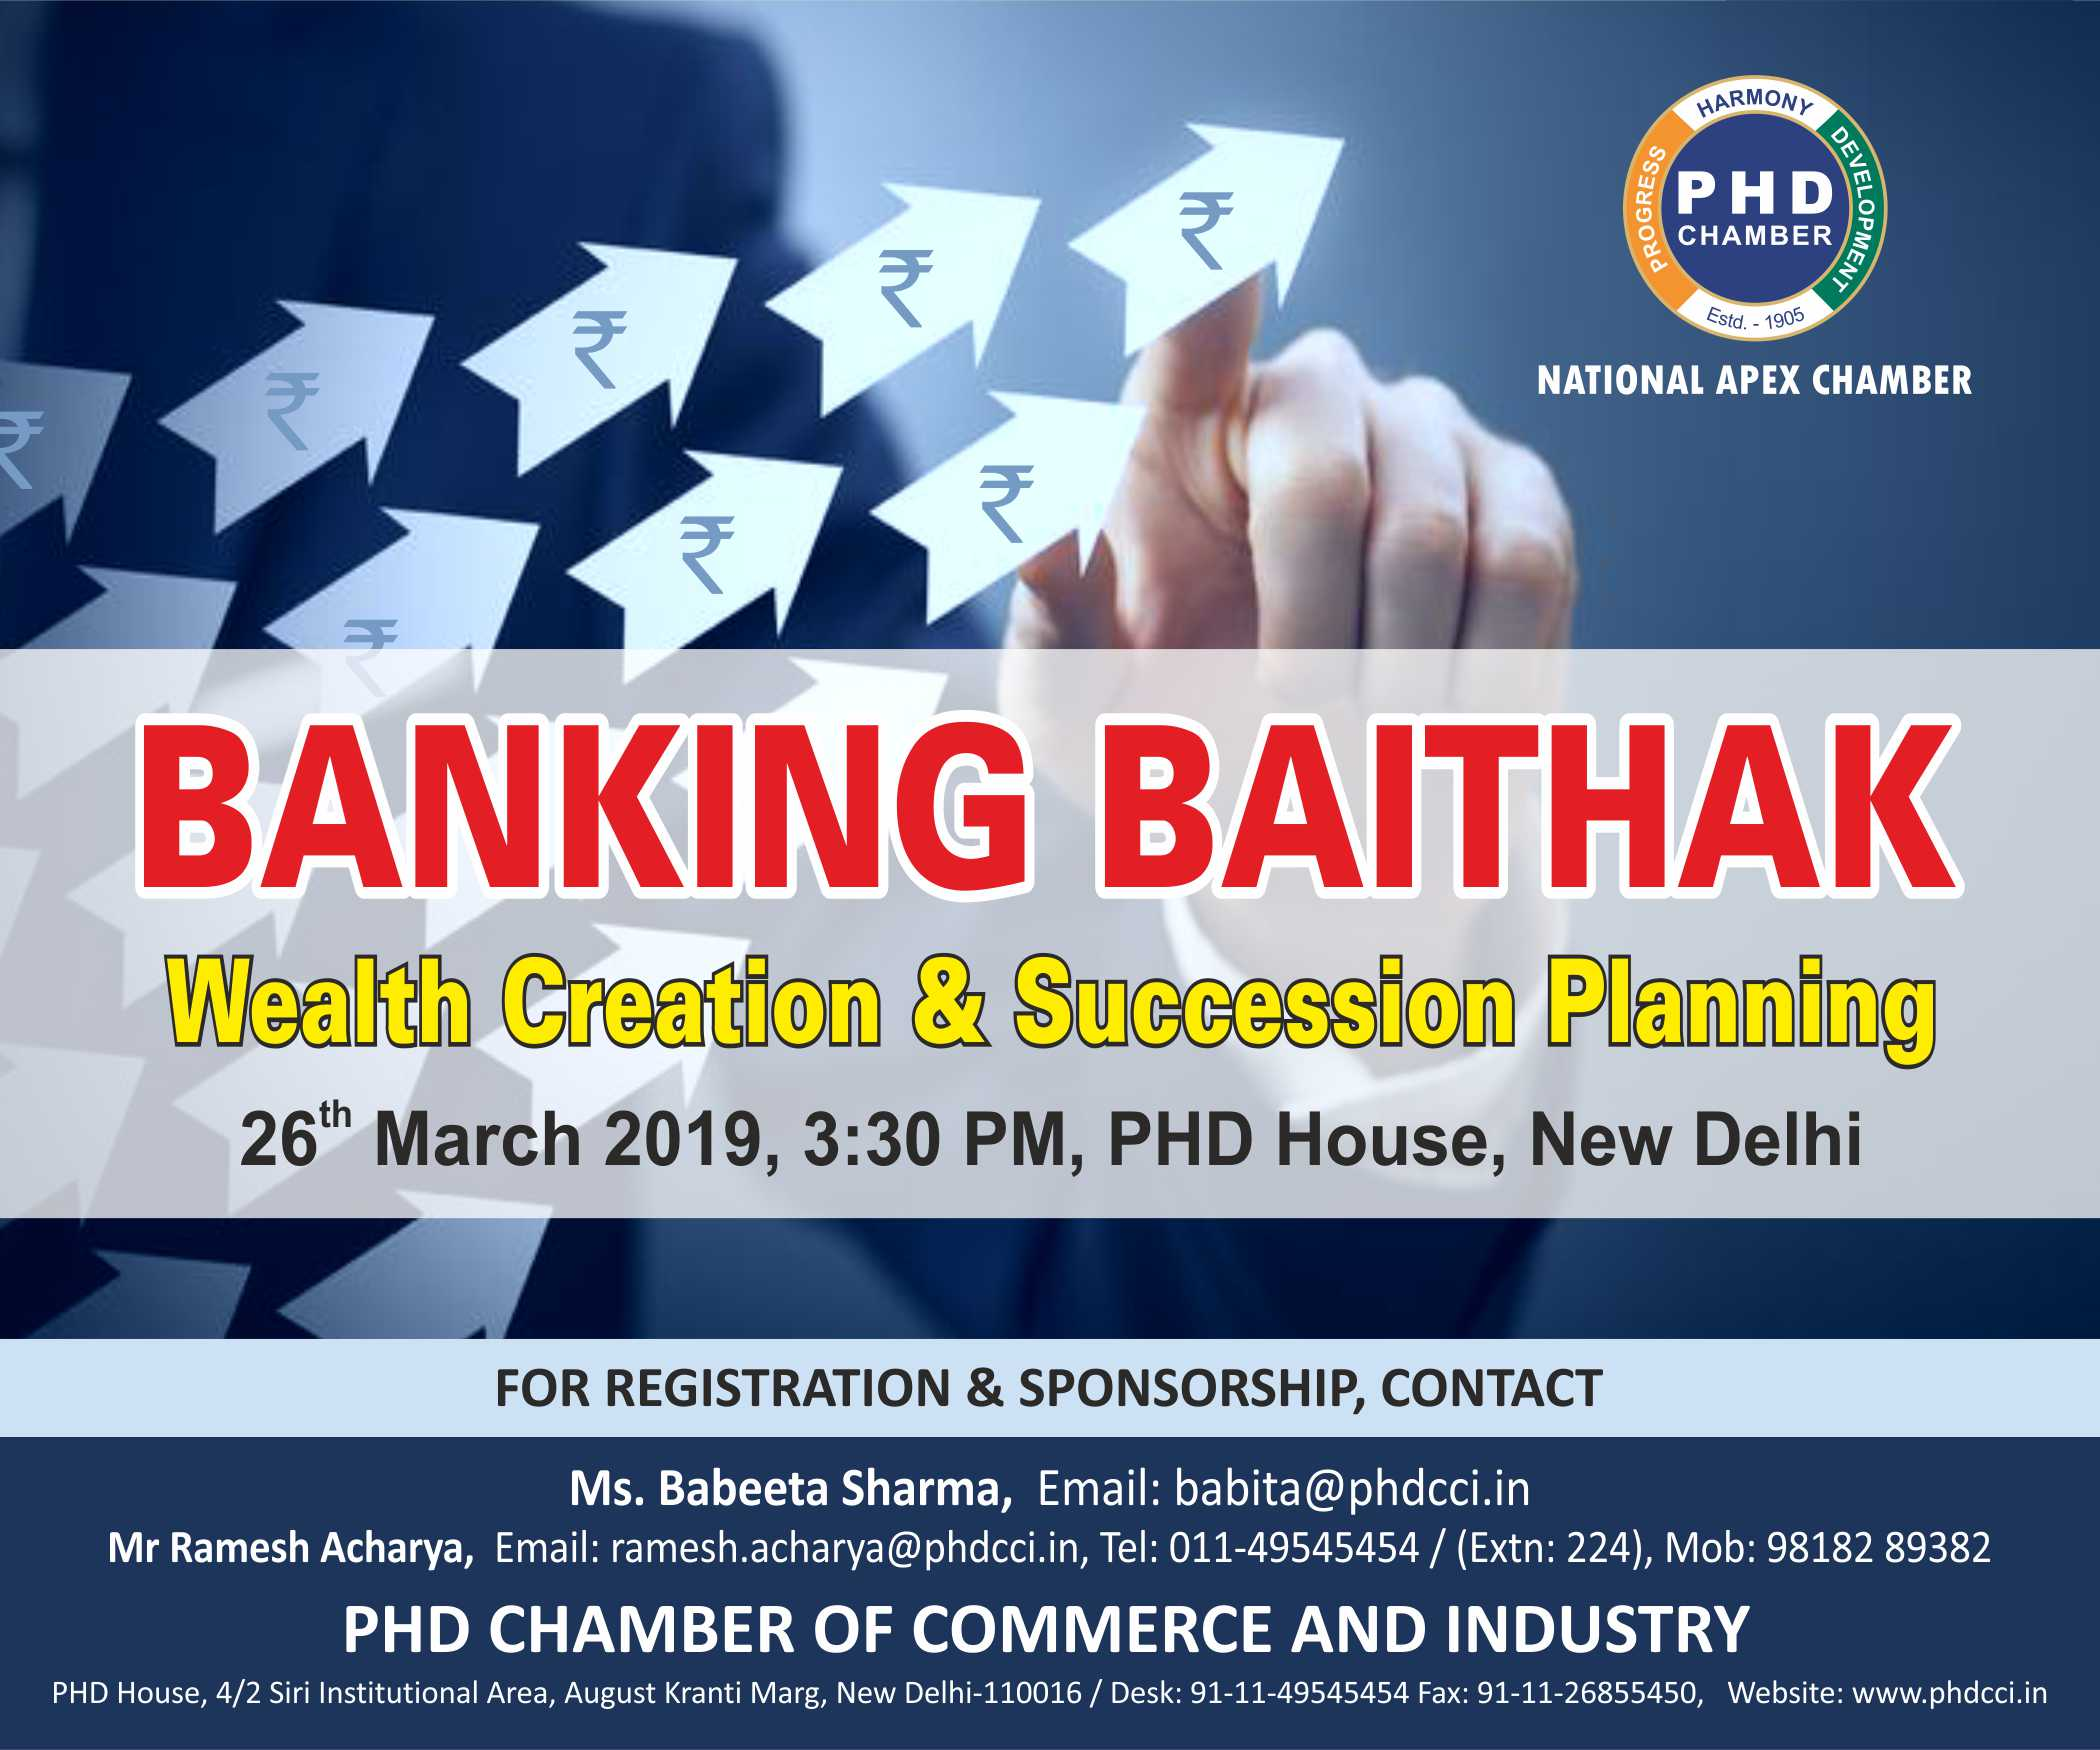 Banking Baithak on Wealth Creation and Succession Planning